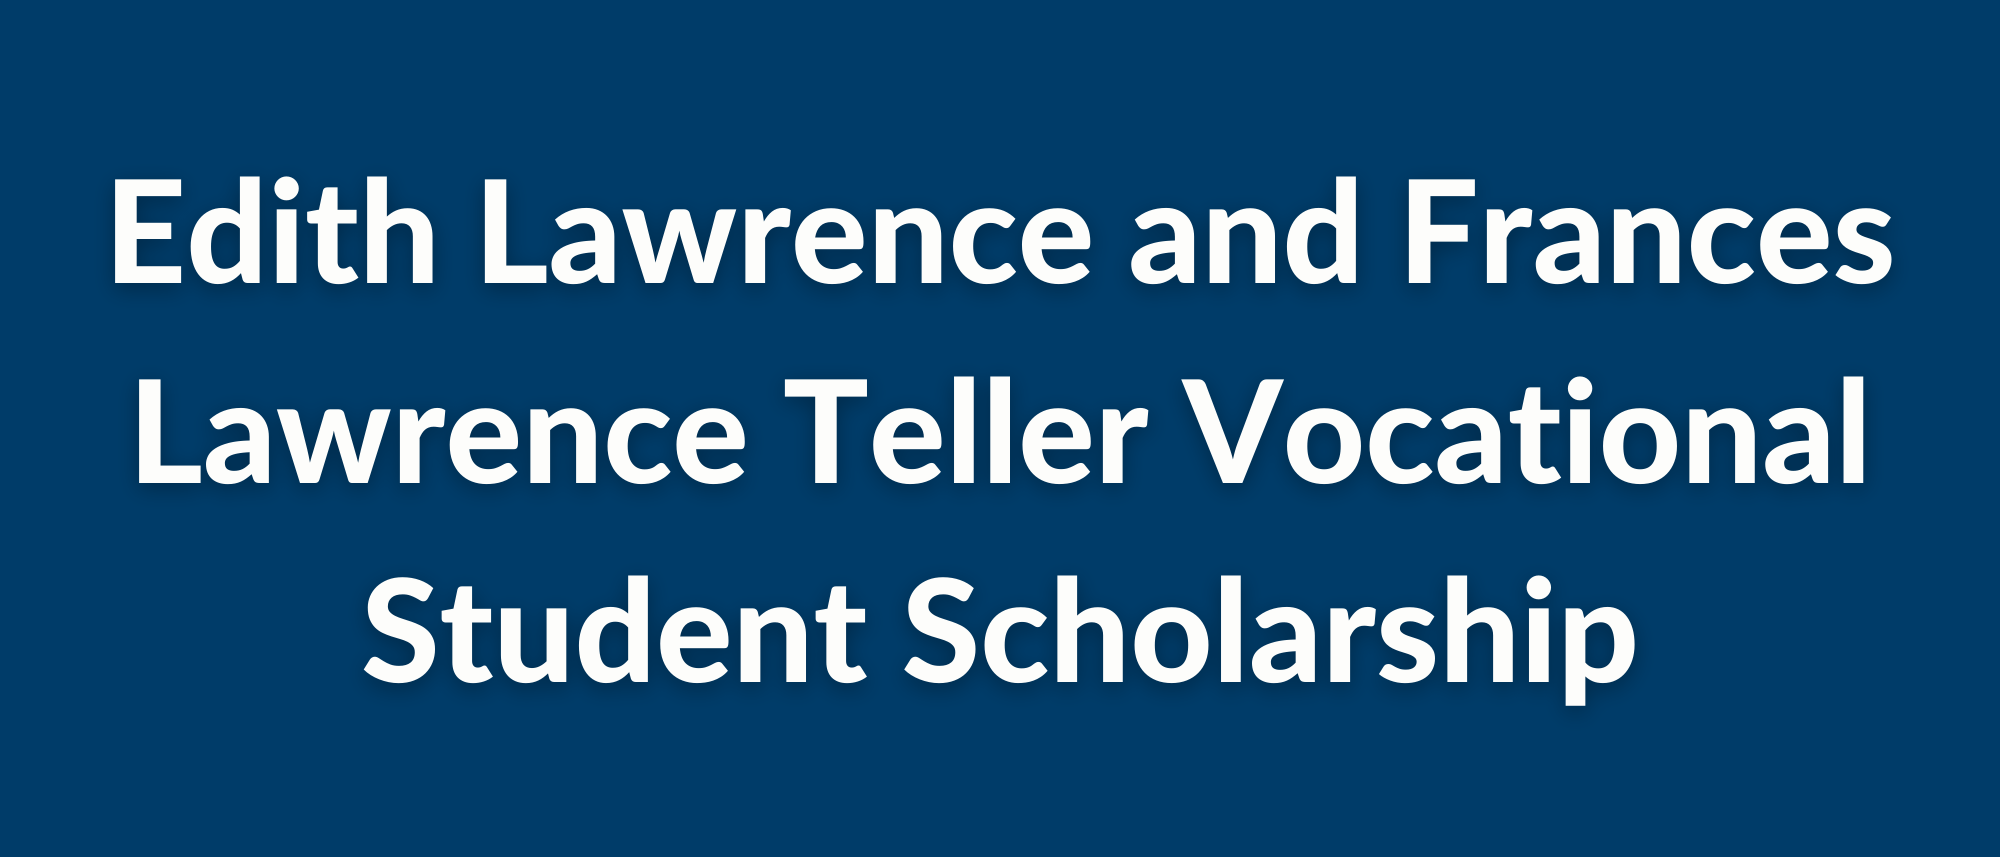 The Edith Lawrence and Frances Lawrence Teller Vocational Student Scholarship (12)